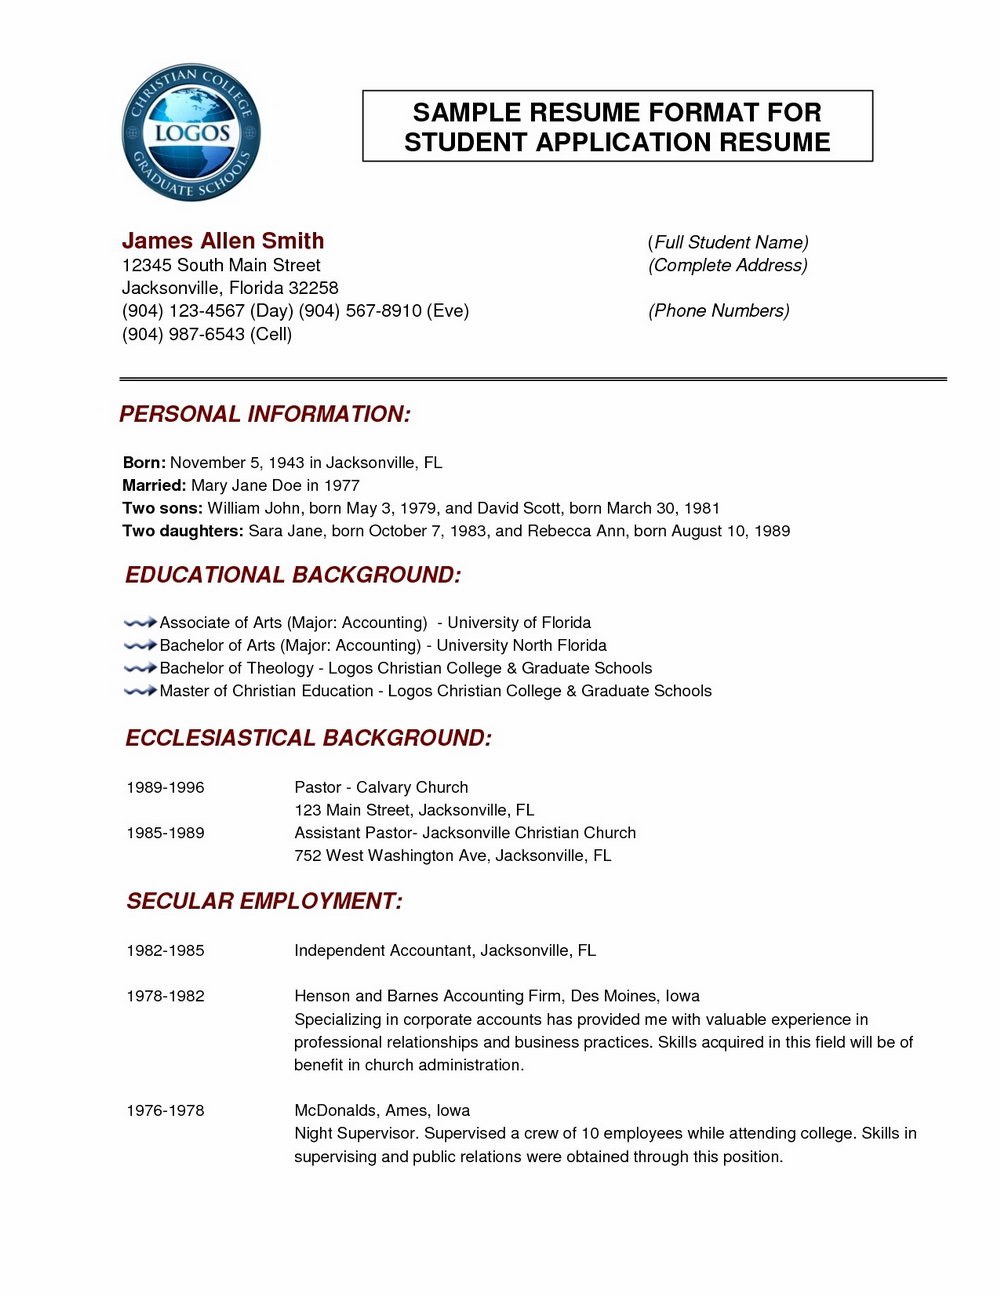 Normal Resume Format Download